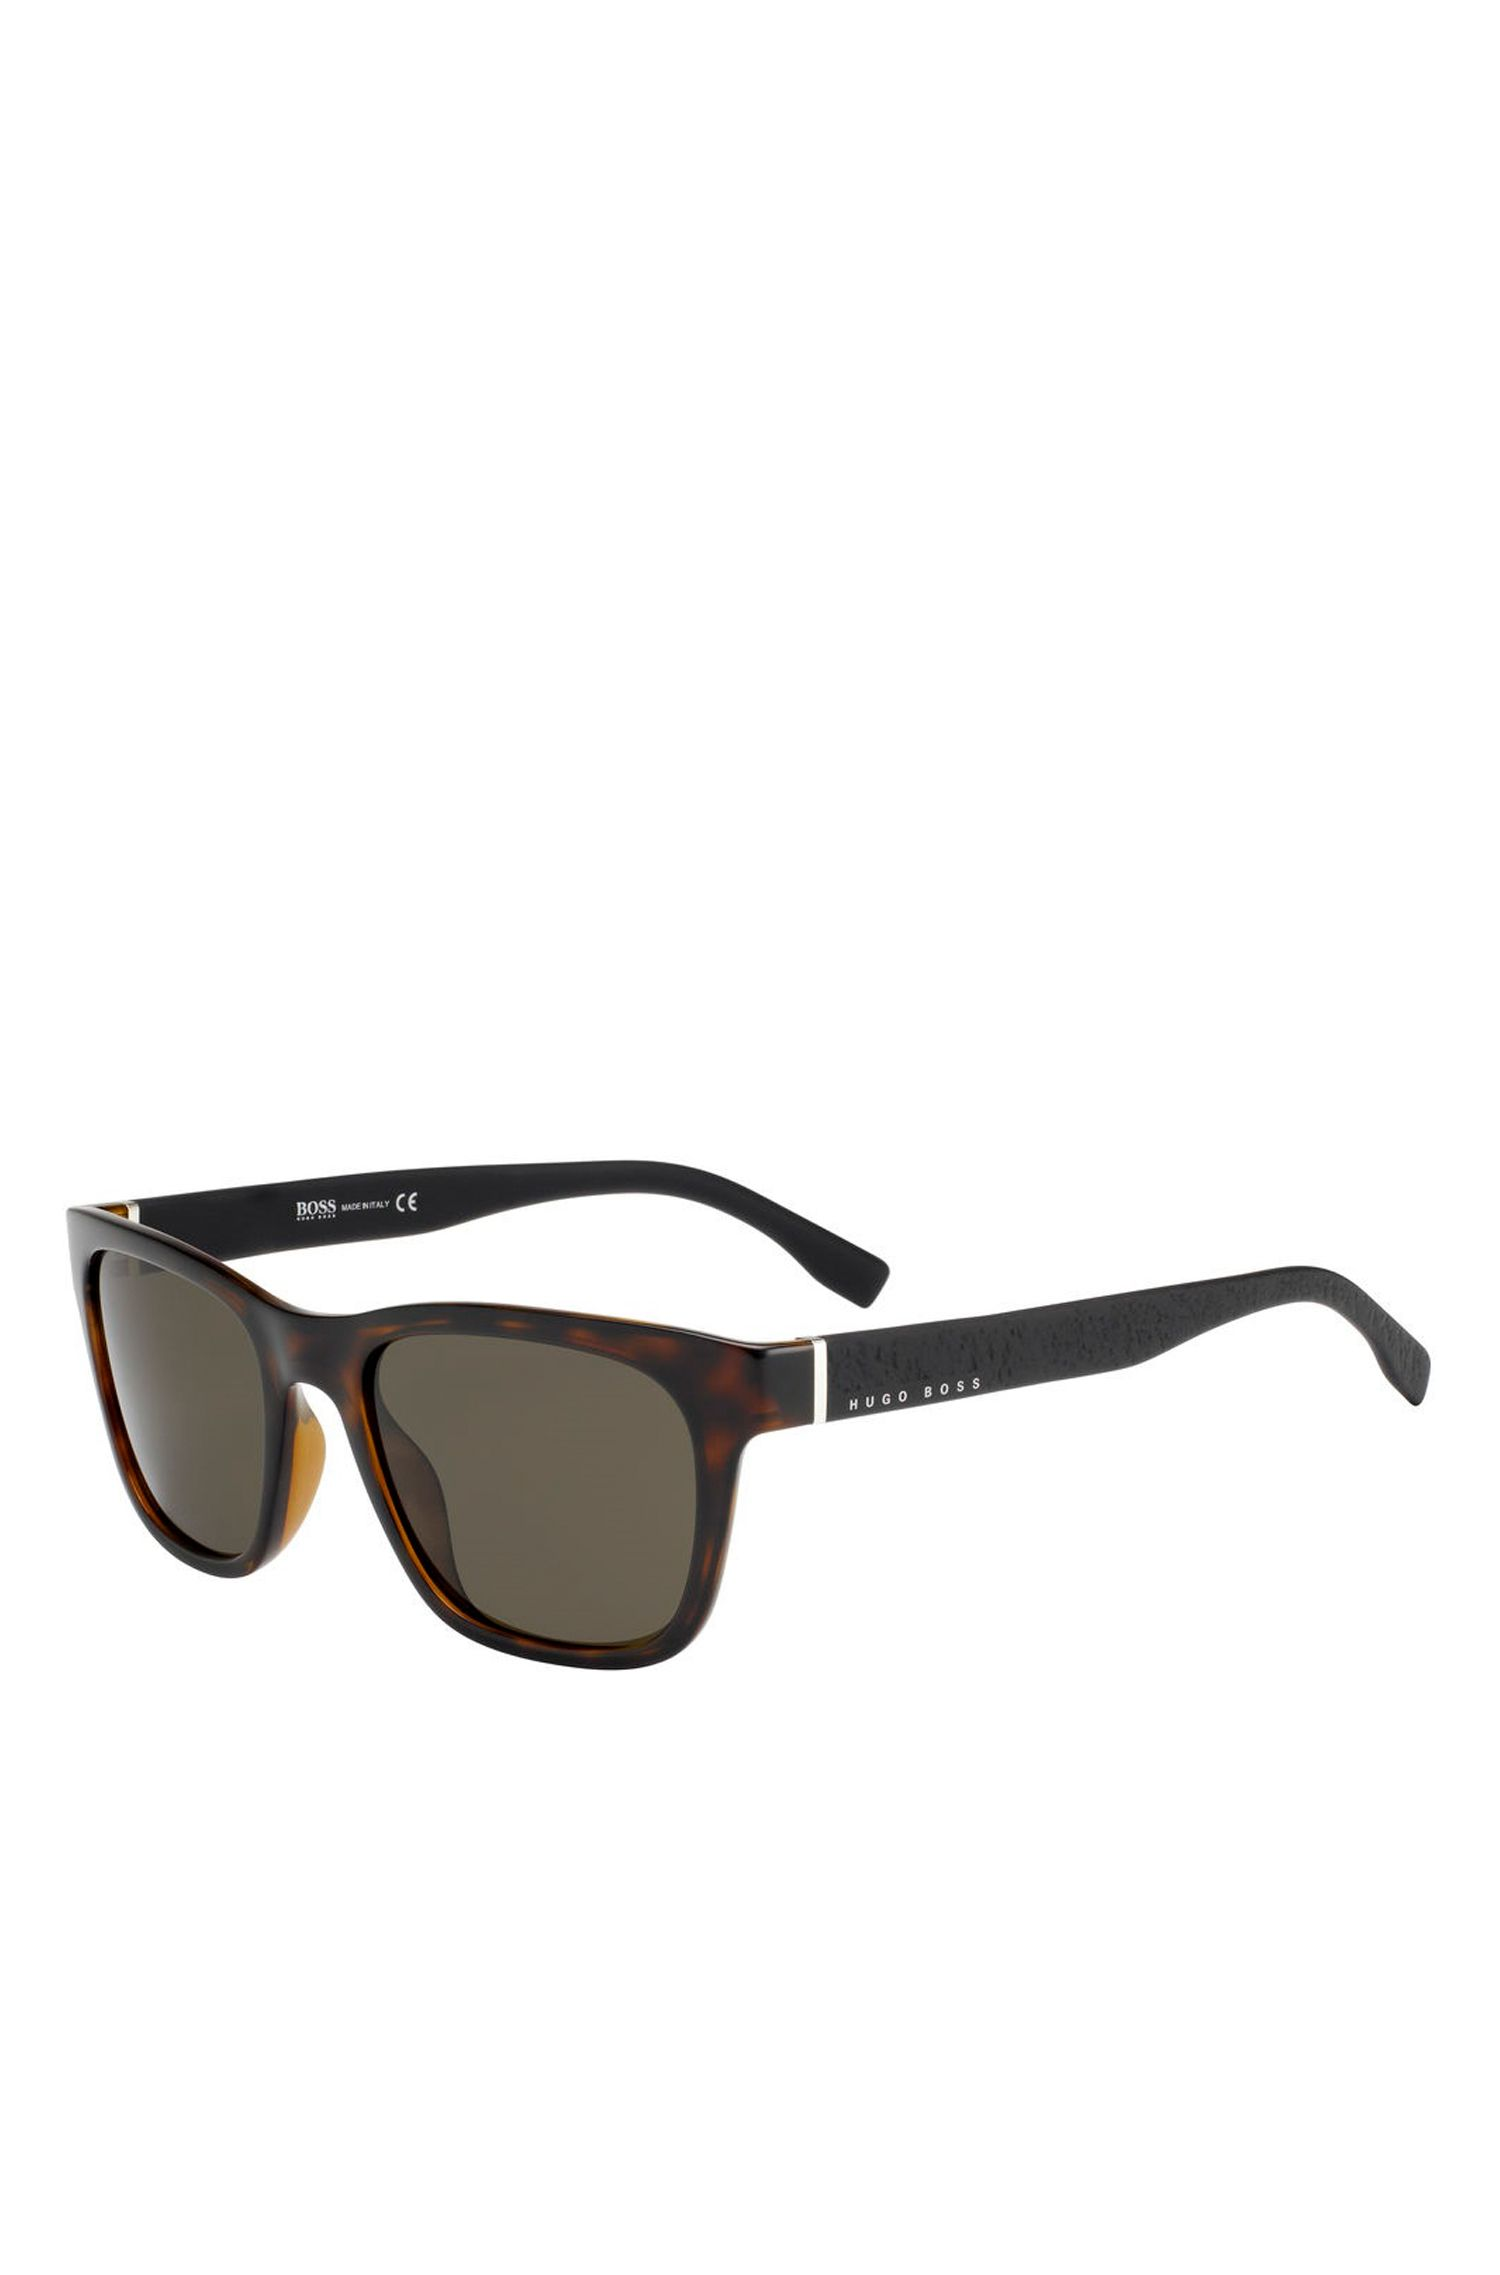 'BOSS 0830' | Black Lens Havana Square Sunglasses